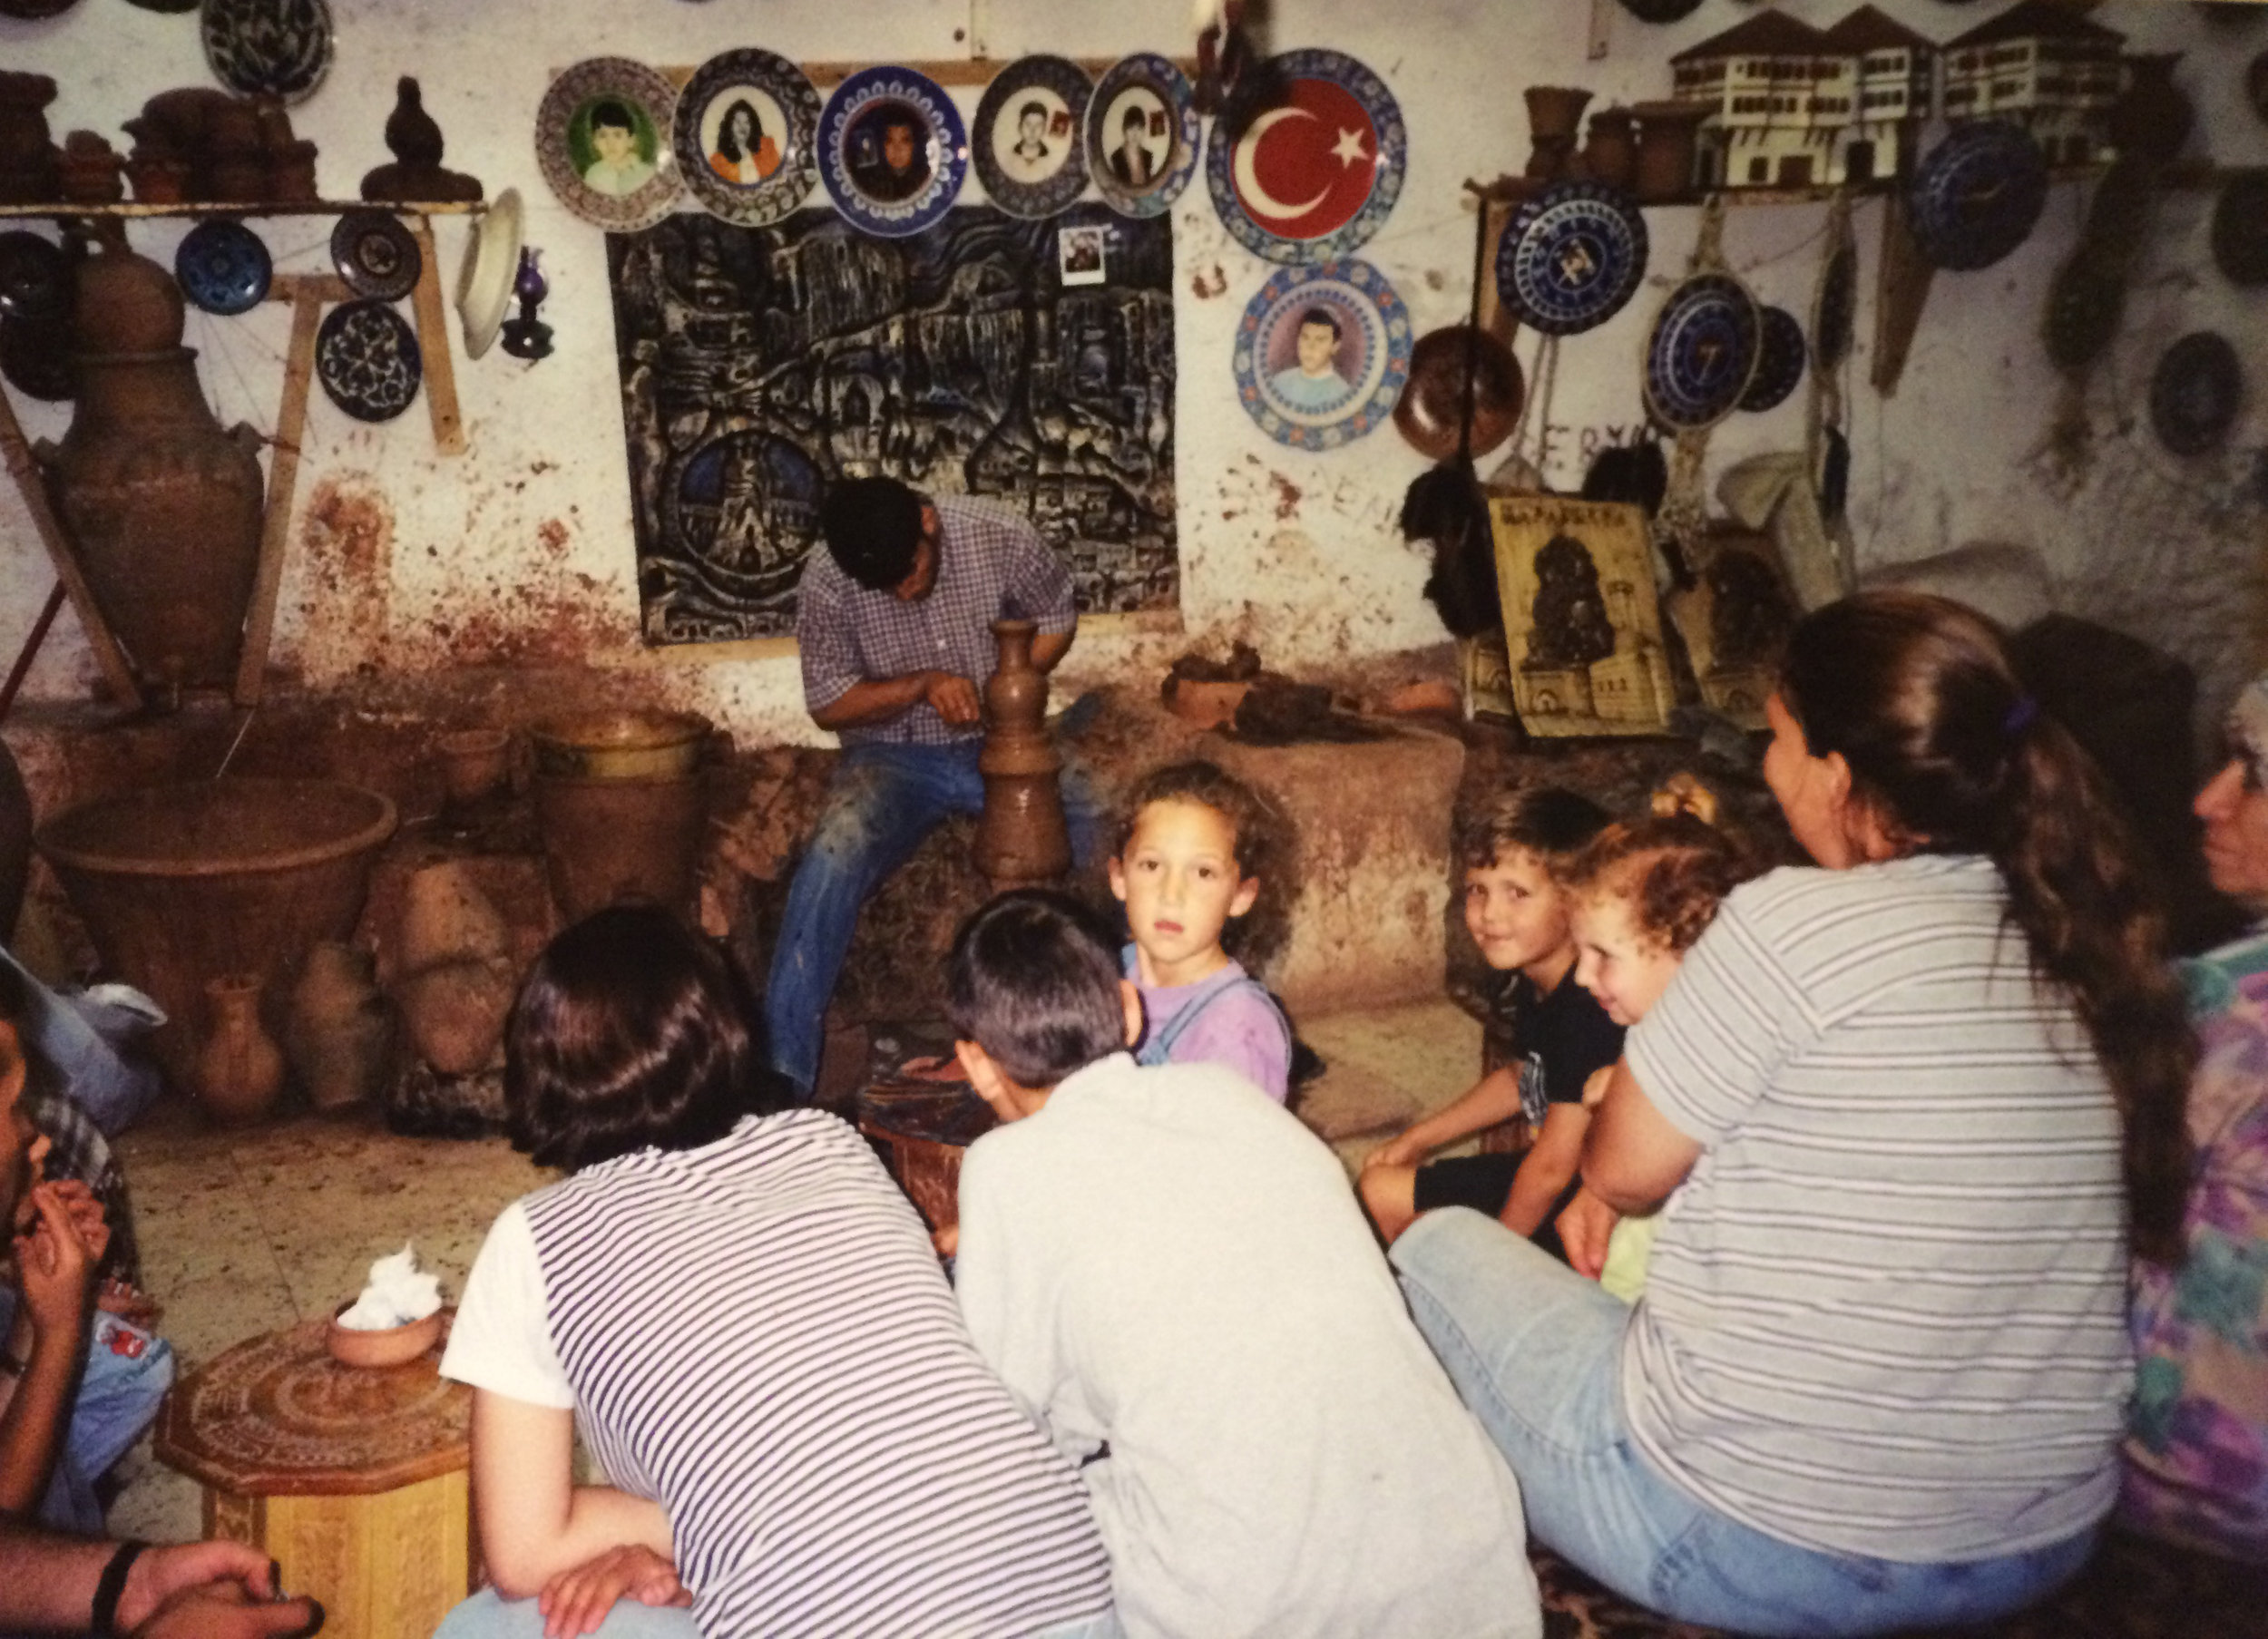 Yours truly in the middle, clearly mesmerized by the work of this ceramicist. This was on a trip to Turkey in 1999 to visit Istanbul where my father grew up and also visit the village Burunkisla that my Armenian grandfather was from. This ceramic shop was in Nevsehir near Burunkisla.